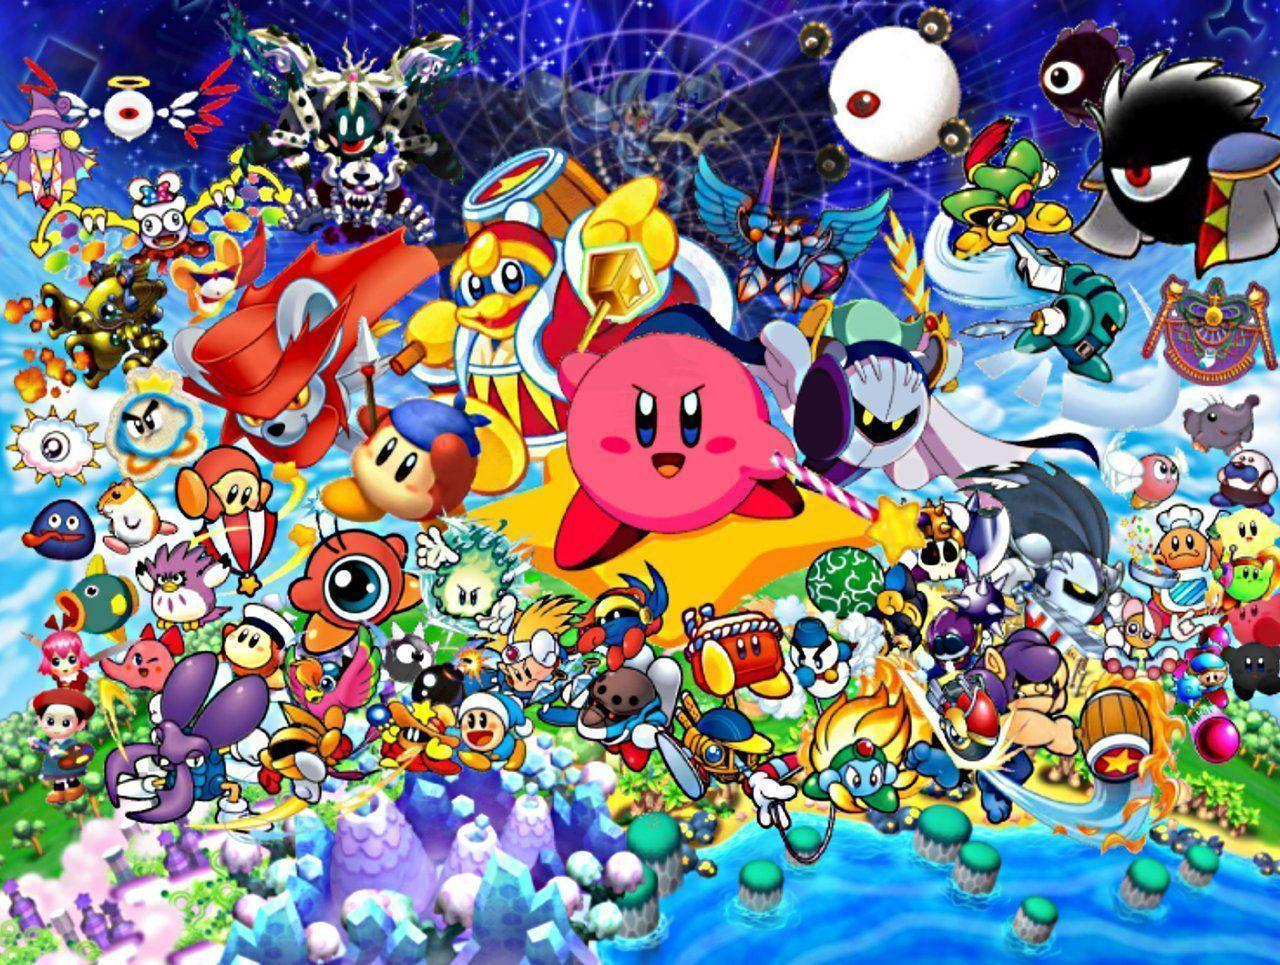 Kirby Wallpaper By KurtTheMortician X On DeviantArt